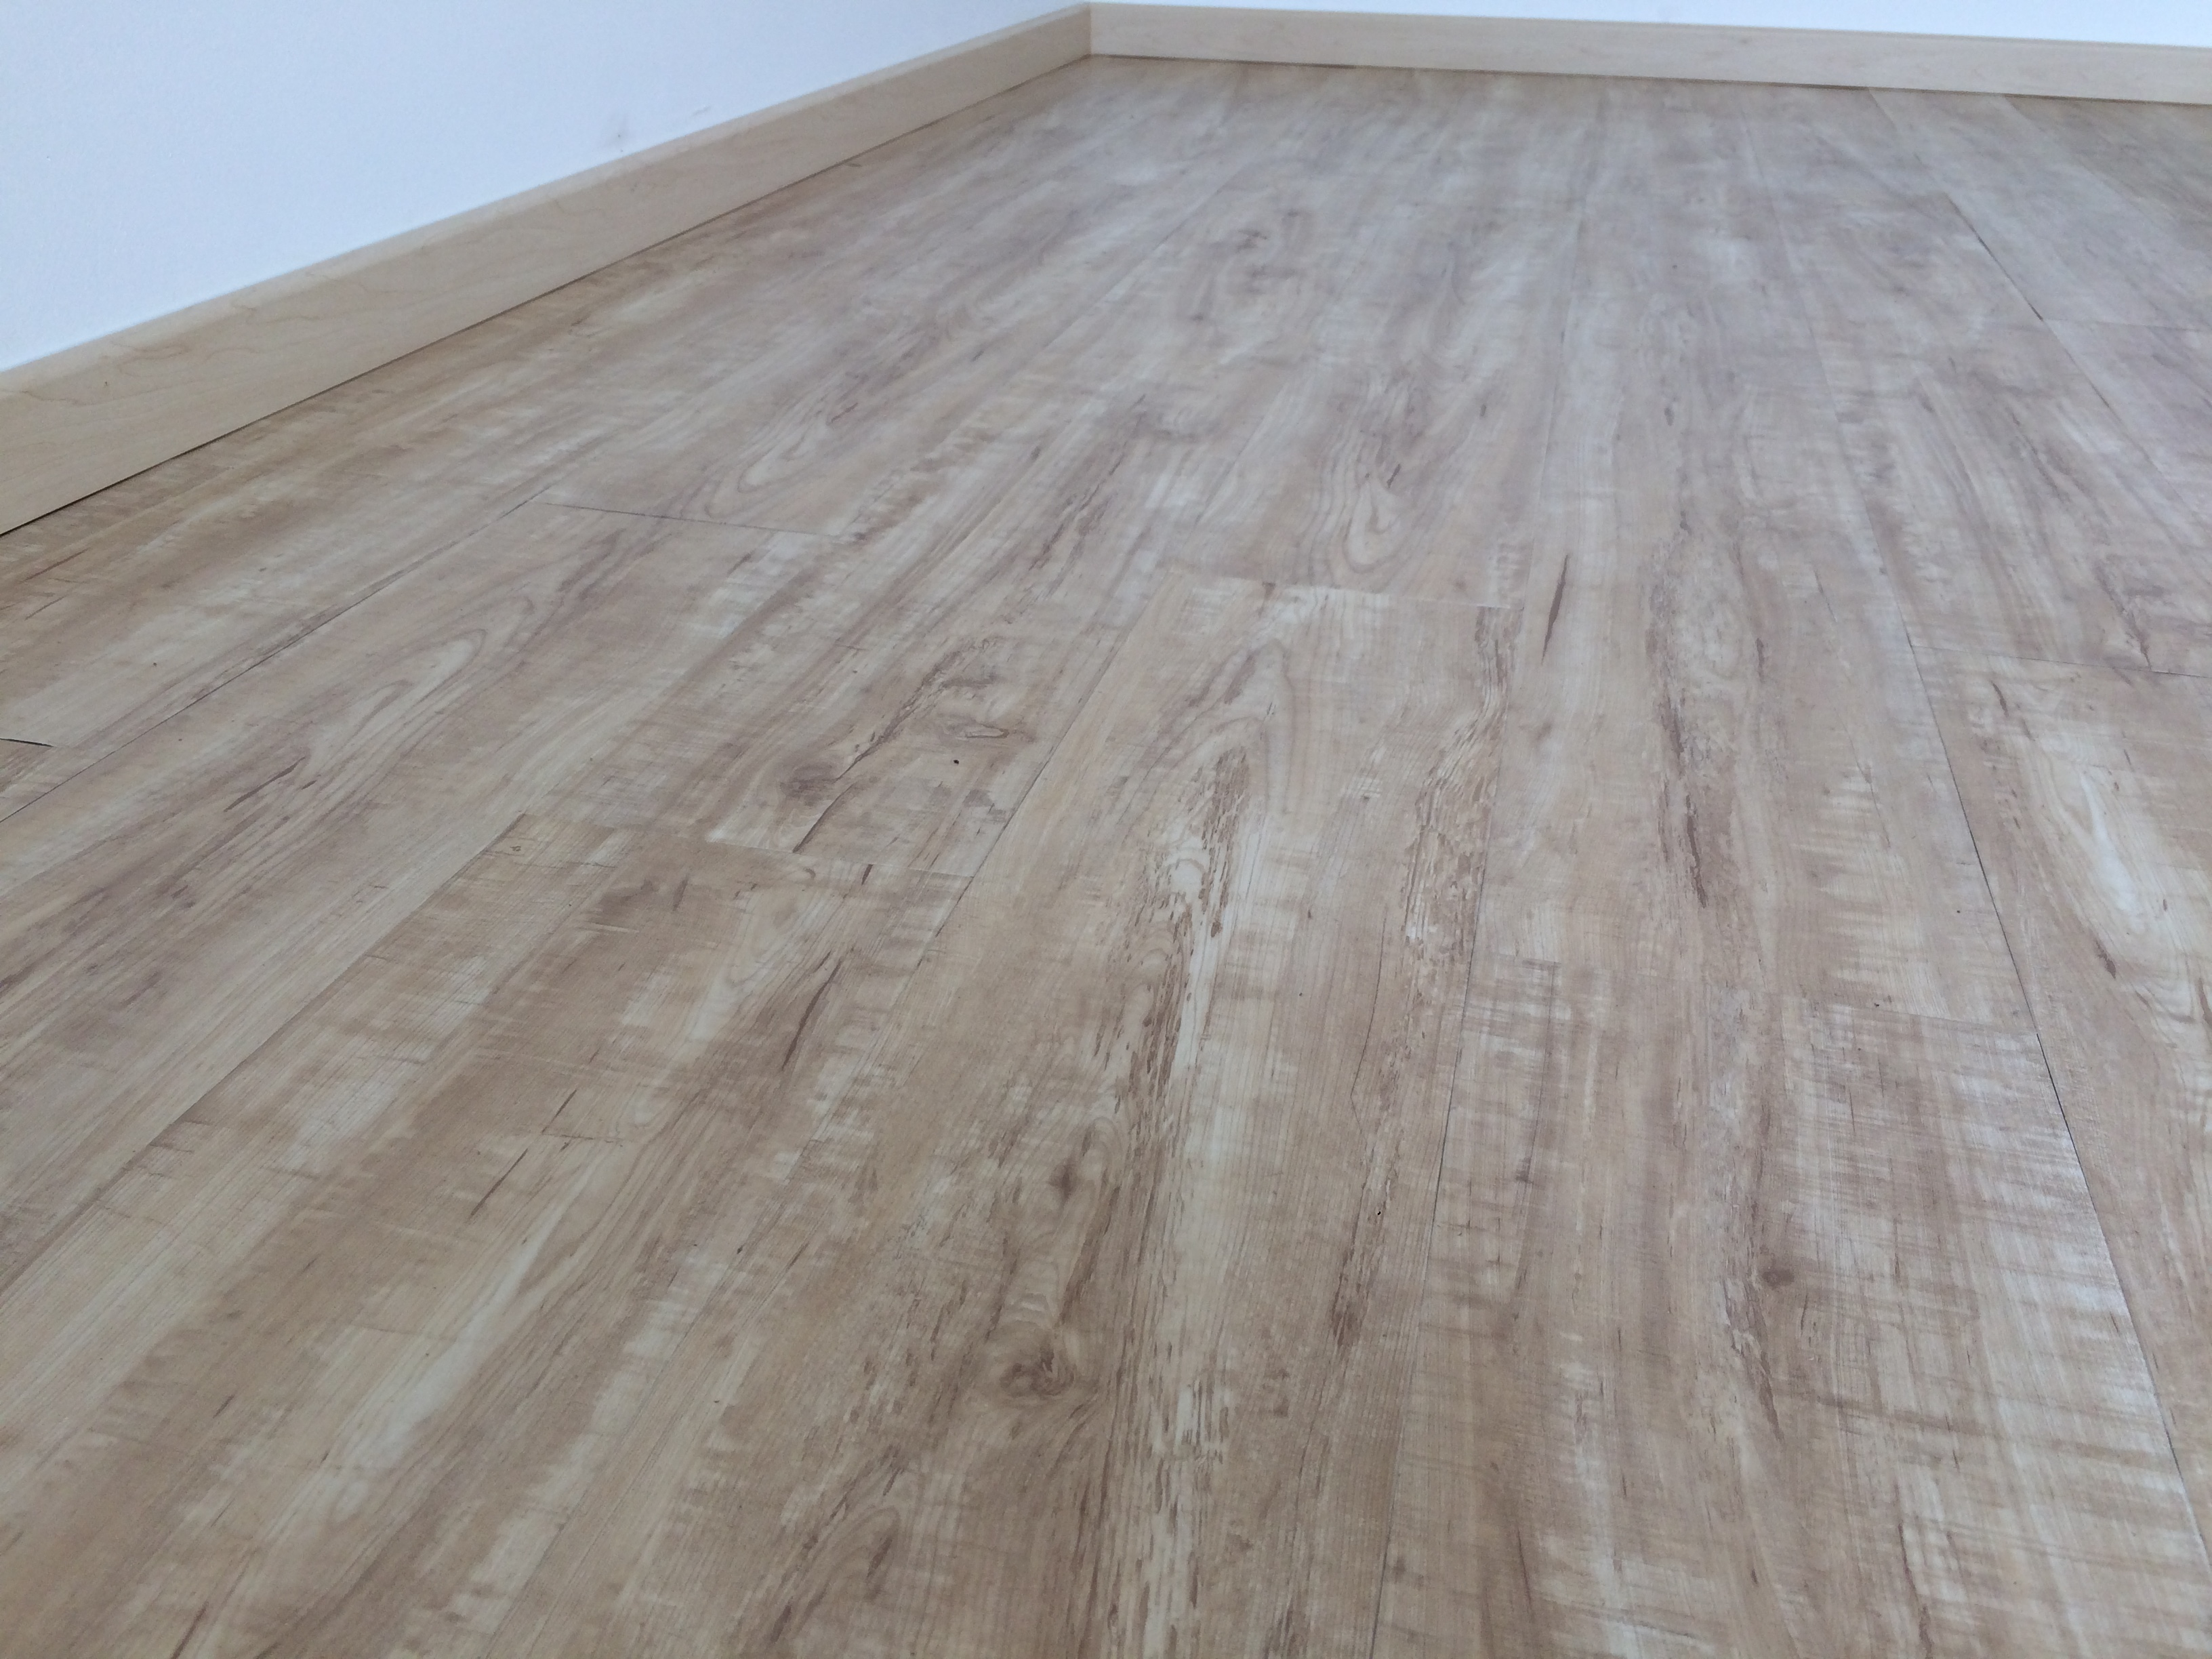 Vinyl Flooring – Segar Road HDB 4 Room | Quads